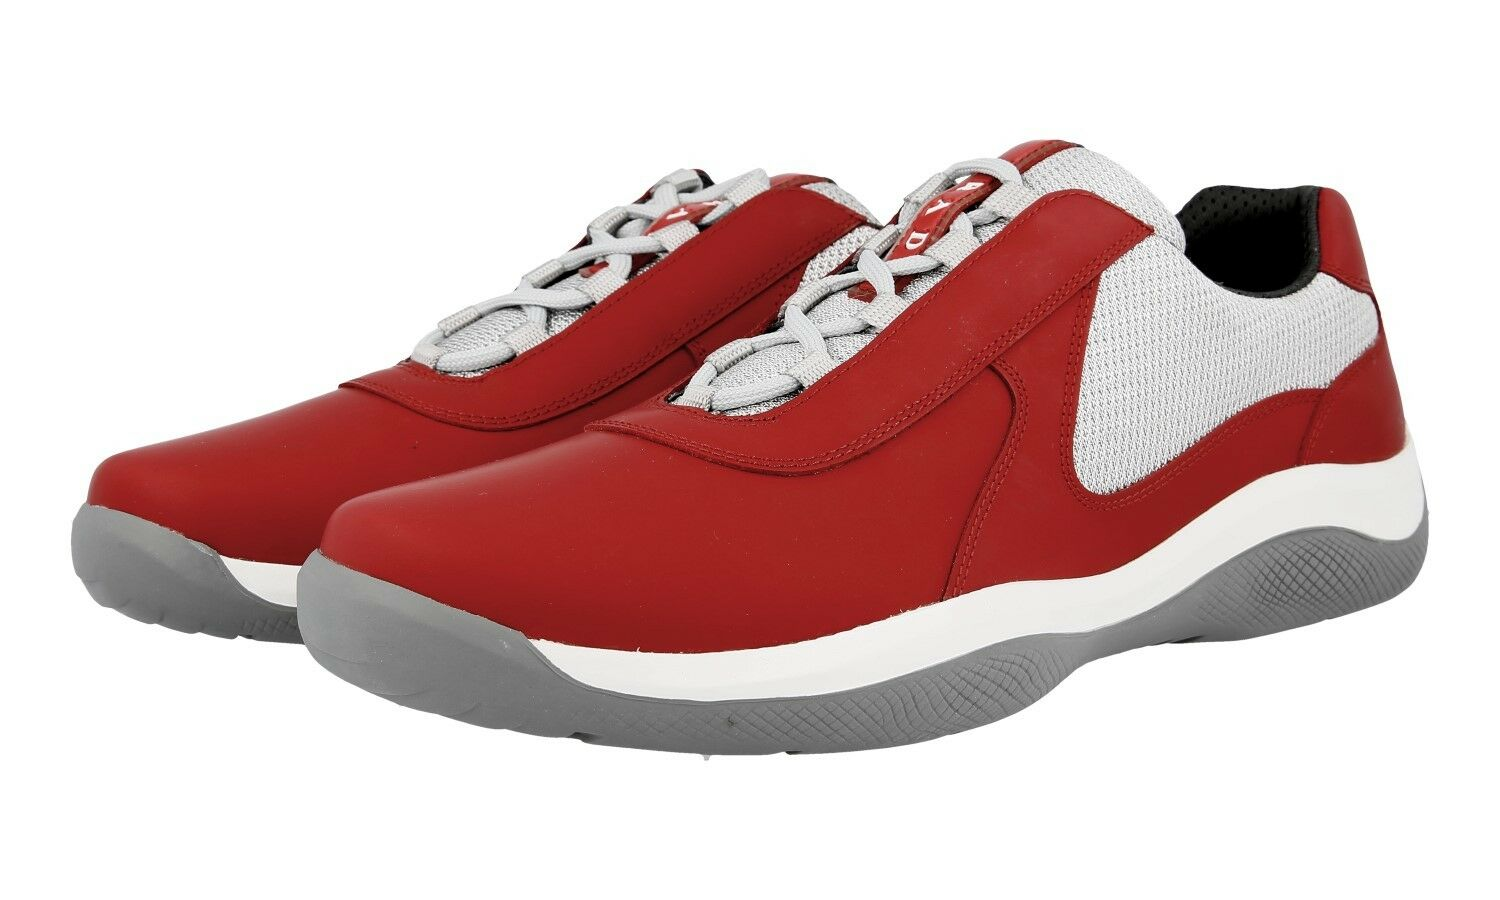 AUTH LUXURY PRADA AMERICAS CUP SNEAKERS SHOES 4E2905 RED US 11.5